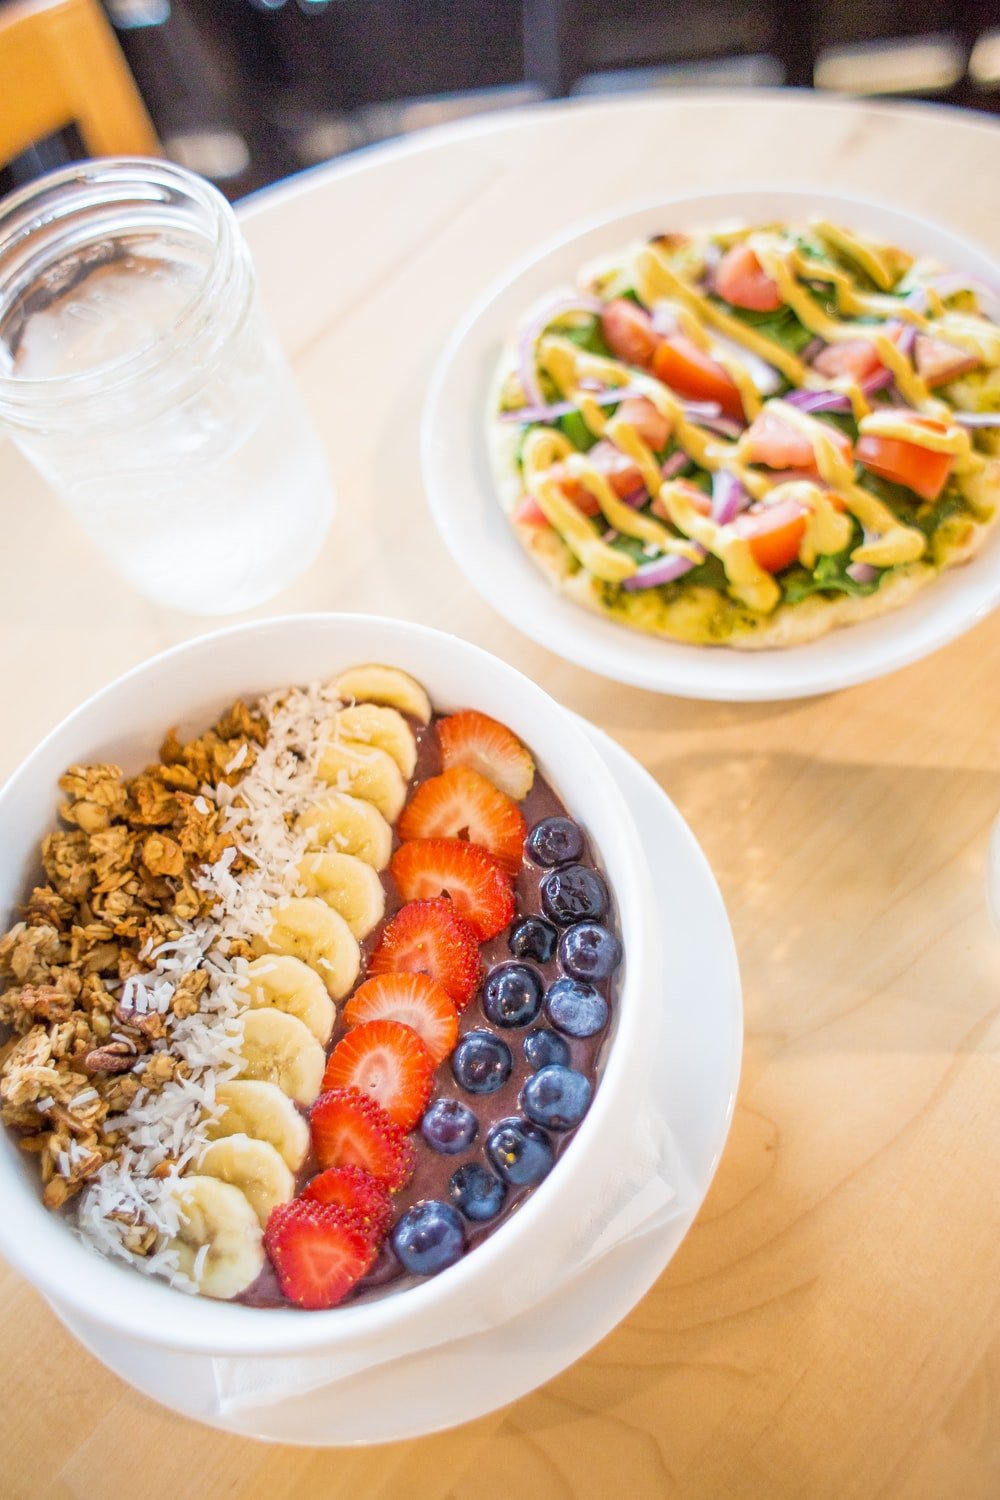 slice banana, strawberry and blueberries on white bowl beside vegetable salad on table